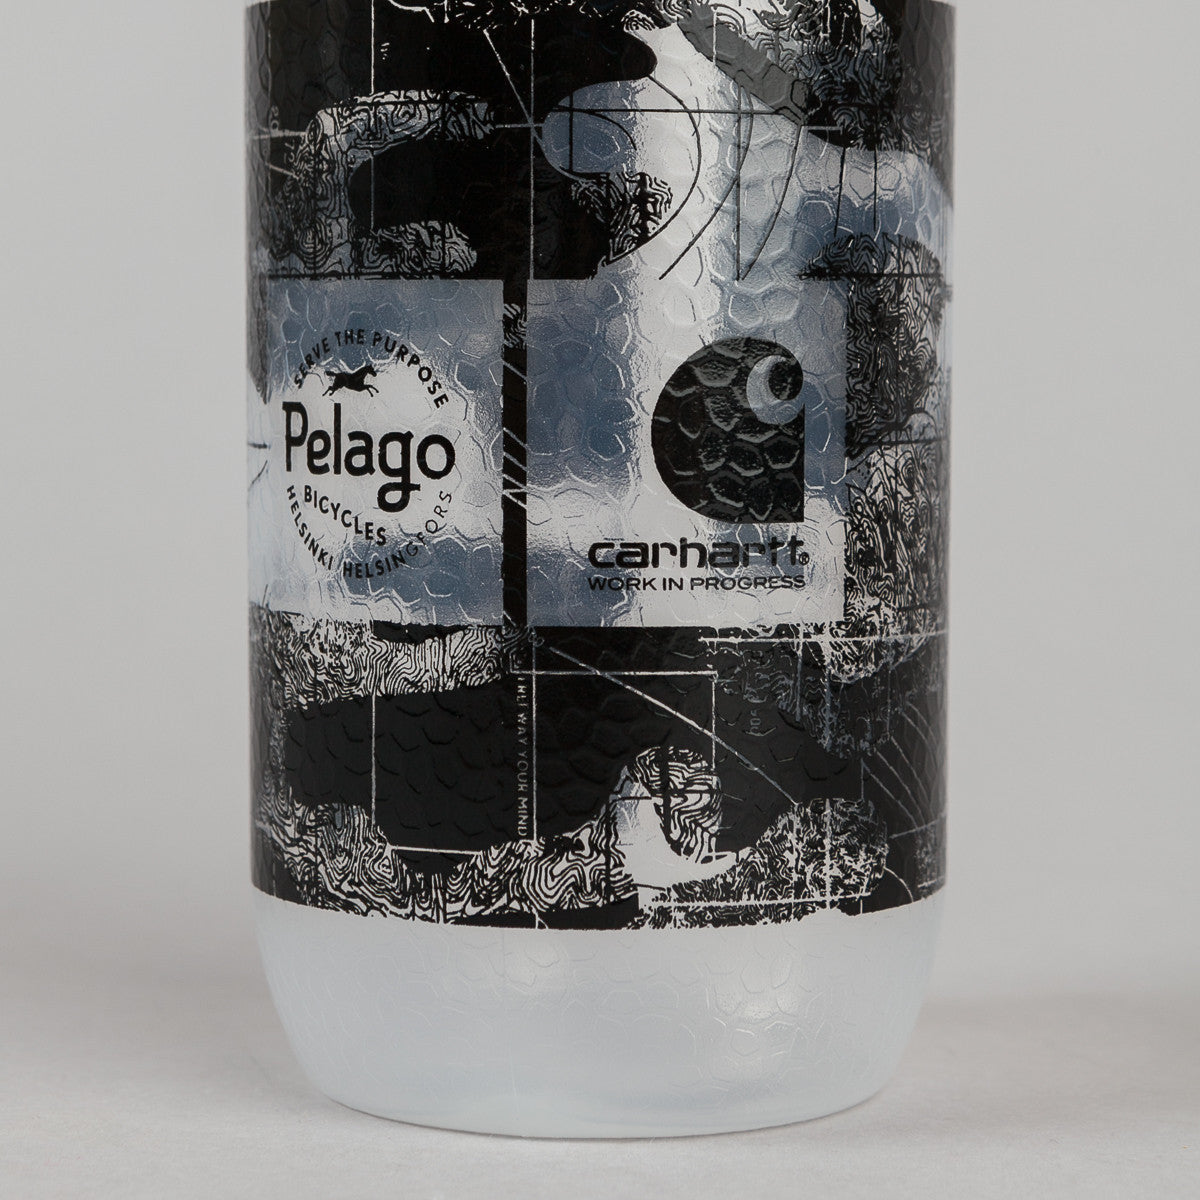 Carhartt x Pelago Cycling Bottle - Black